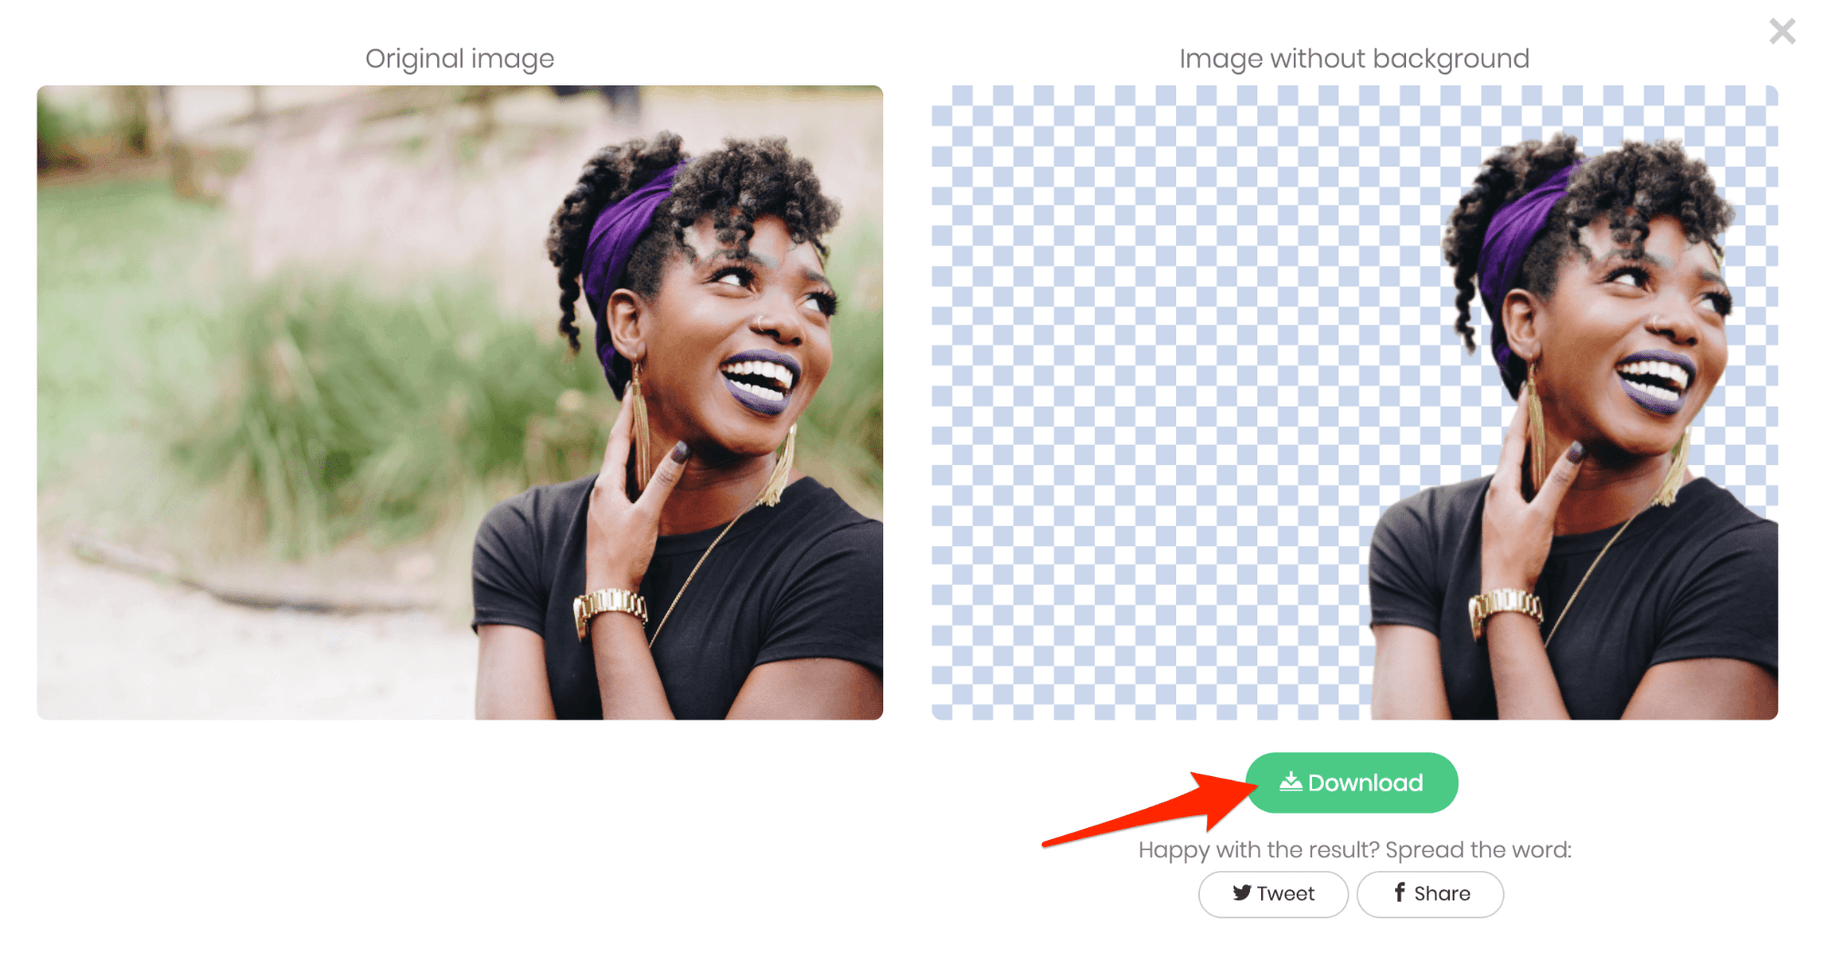 How To Remove A Background From An Image Online Or In Photoshop